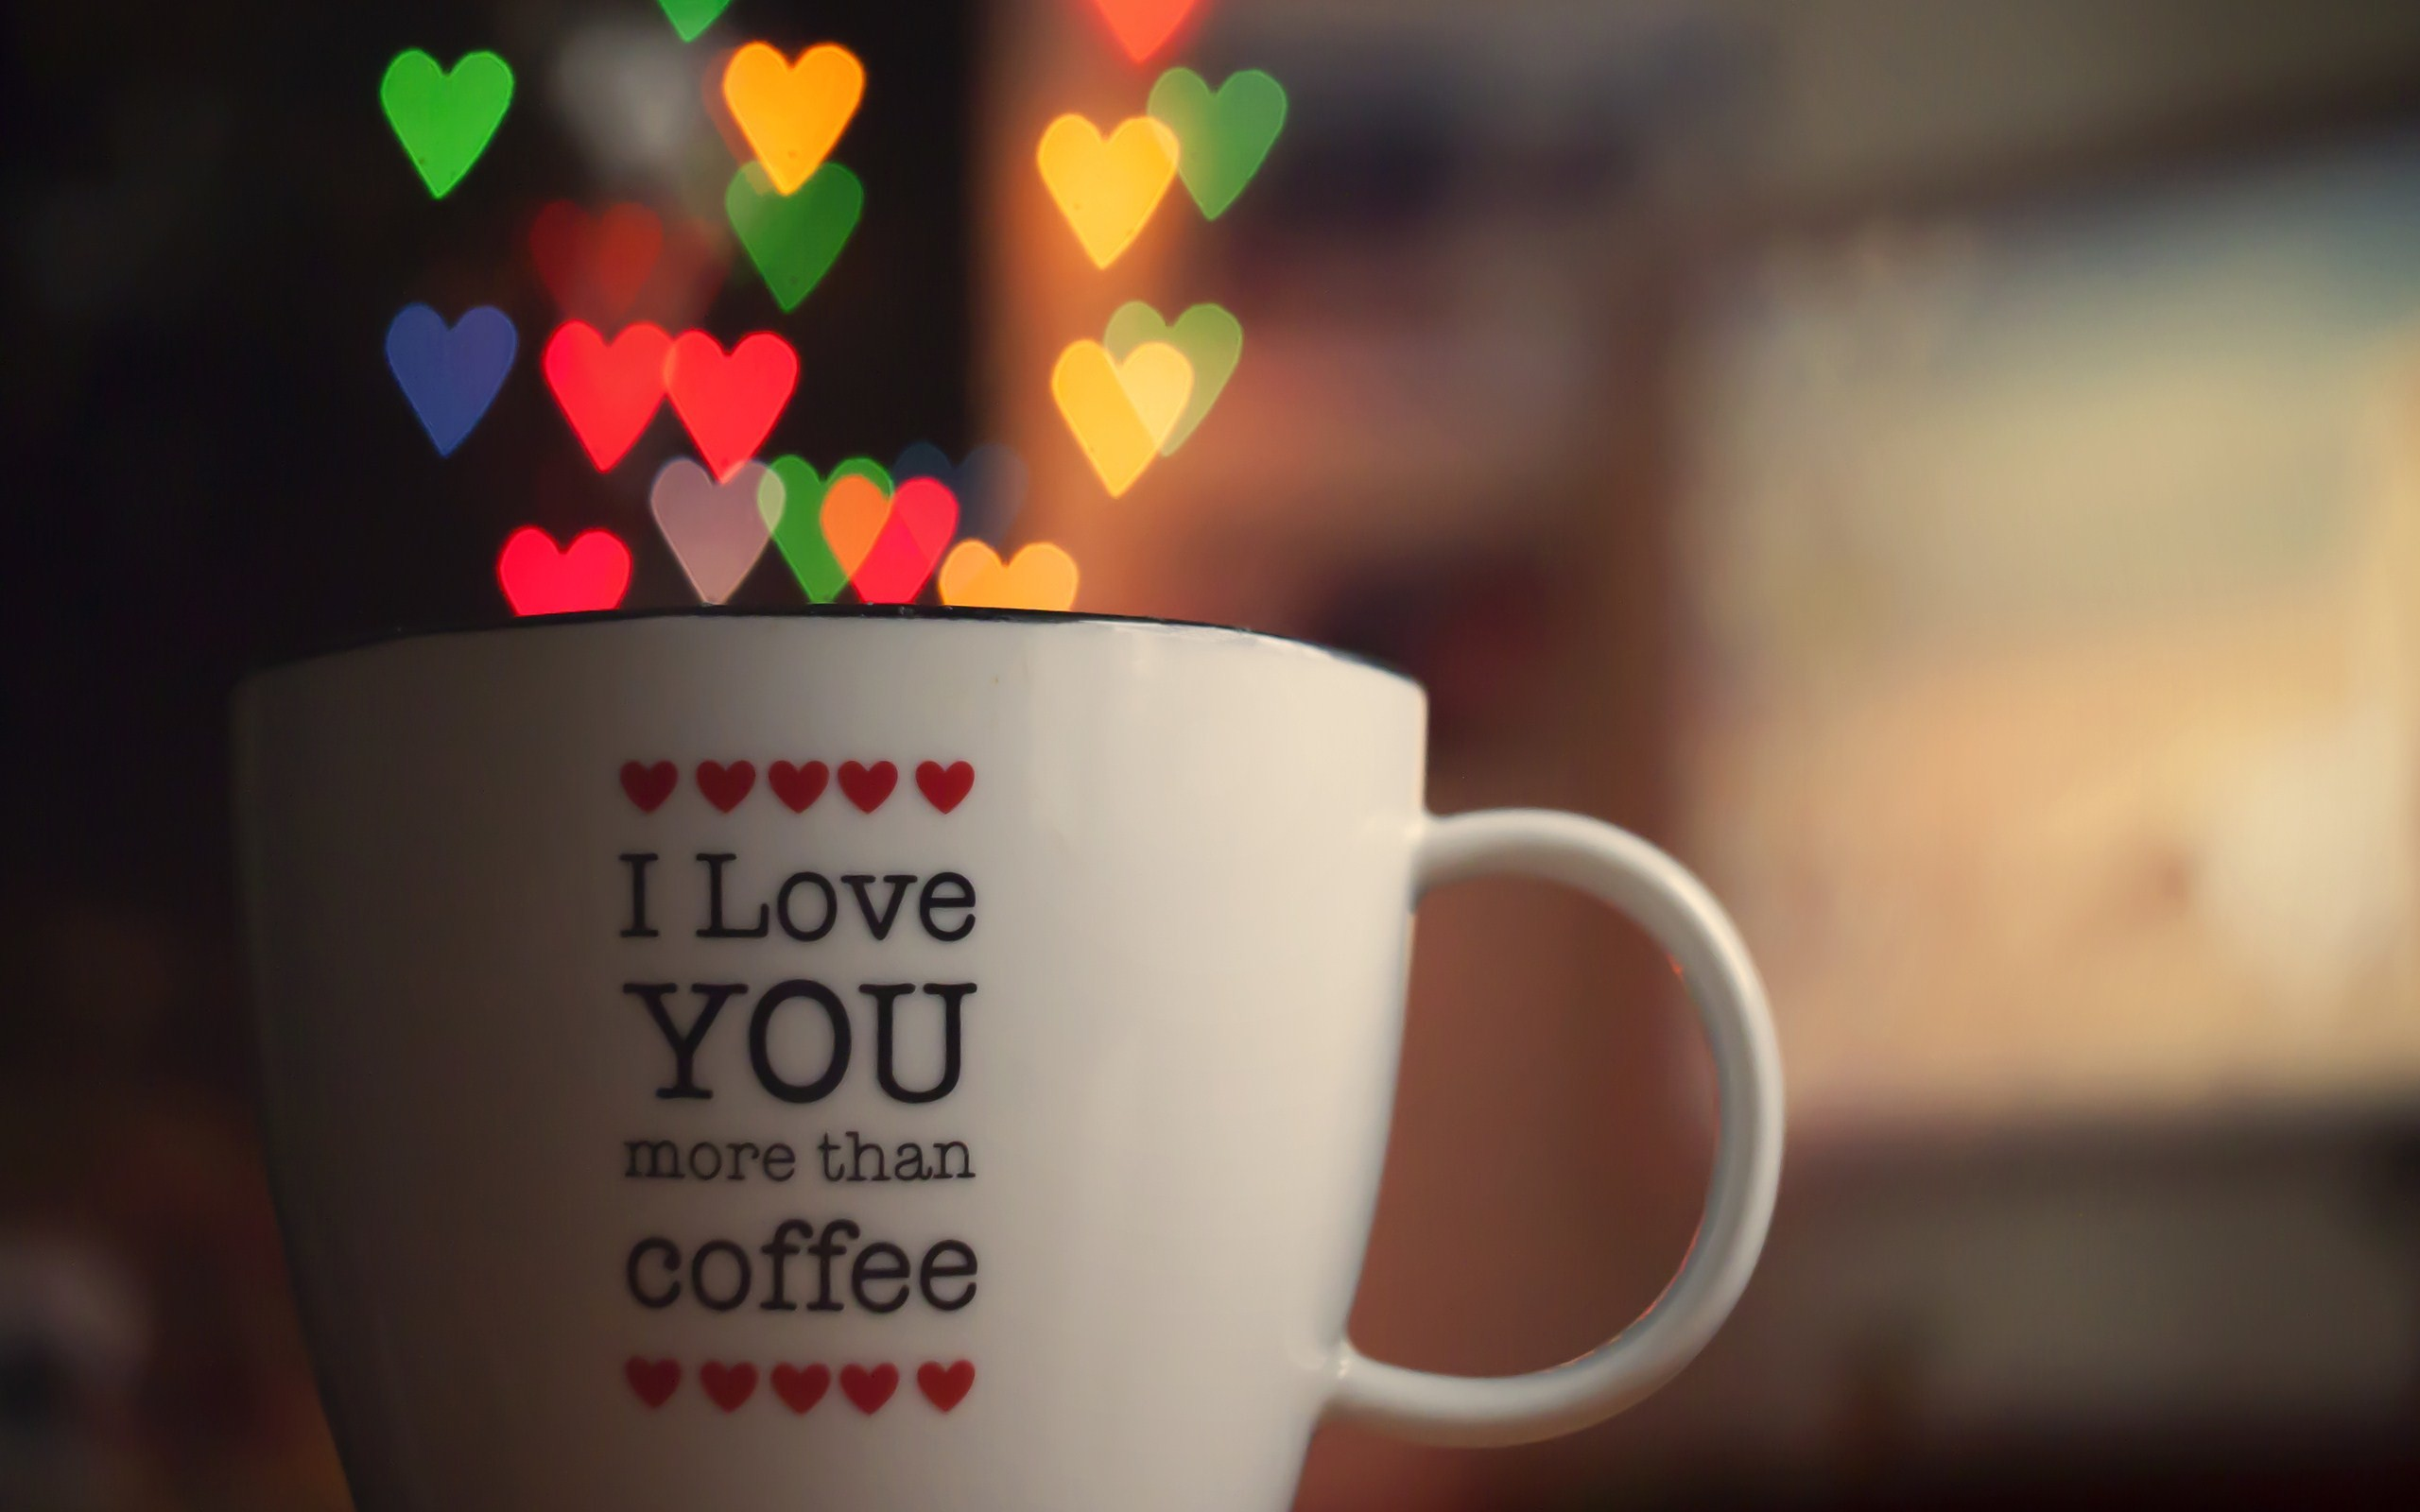 2560x1600 I Love You Words Cup Hearts Photo HD Wallpaper is a awesome hd photography.  Free